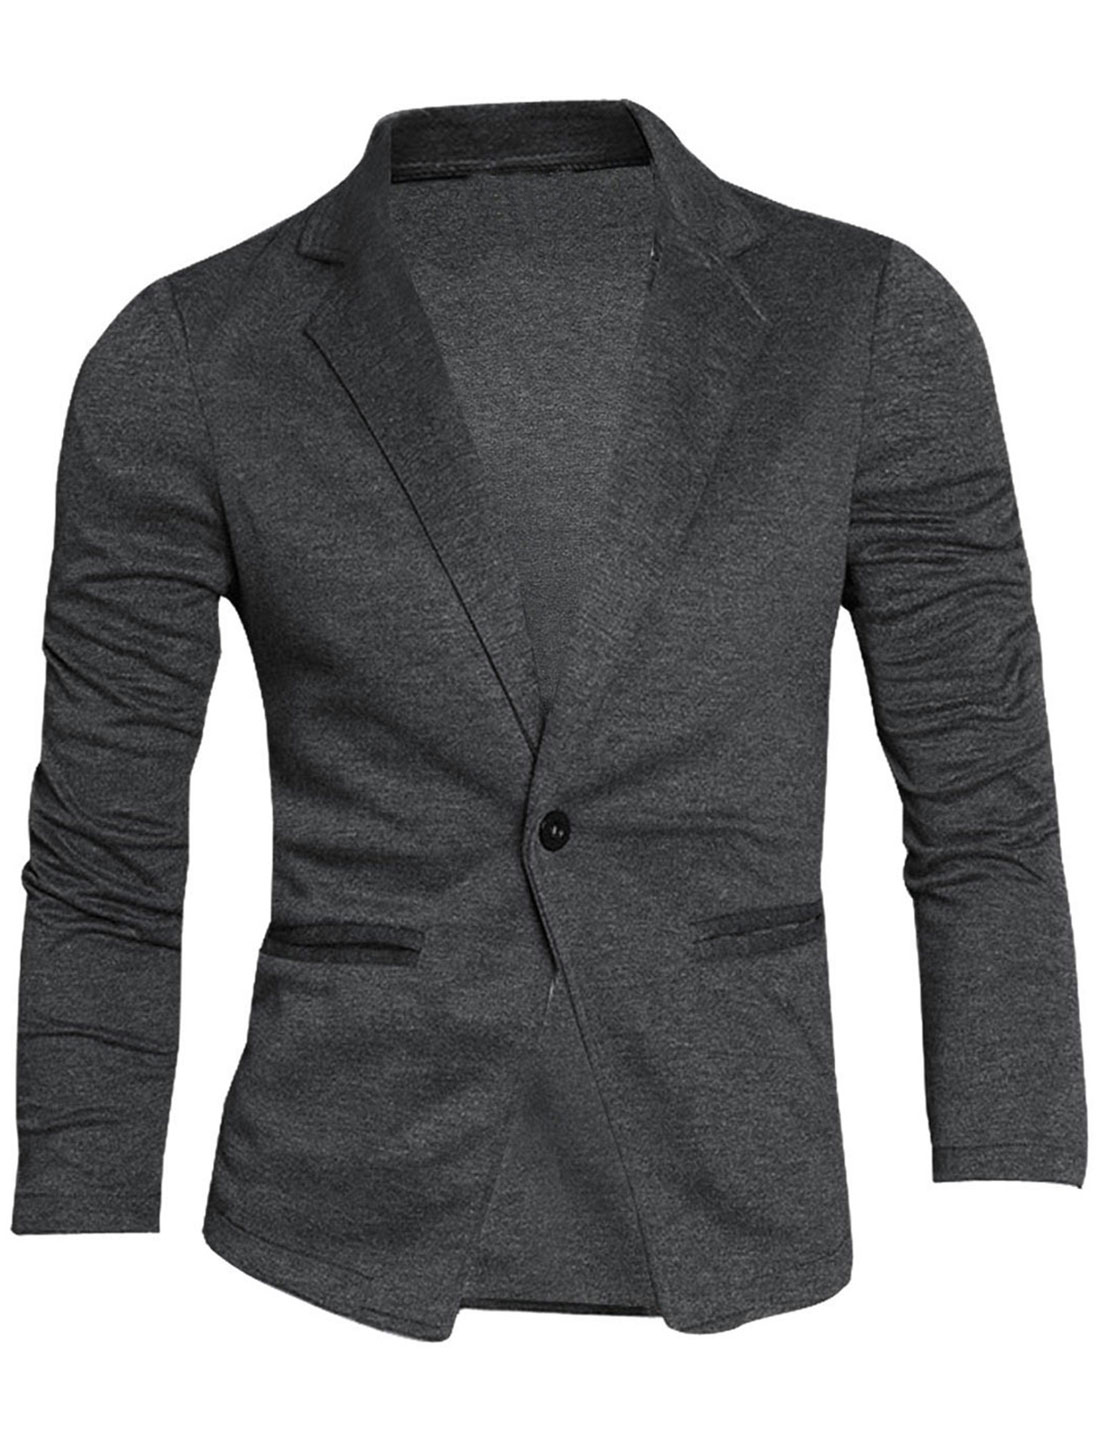 Men Stylish Newly Peaked Lapel Single Button Closure Blazer Dark Gray S